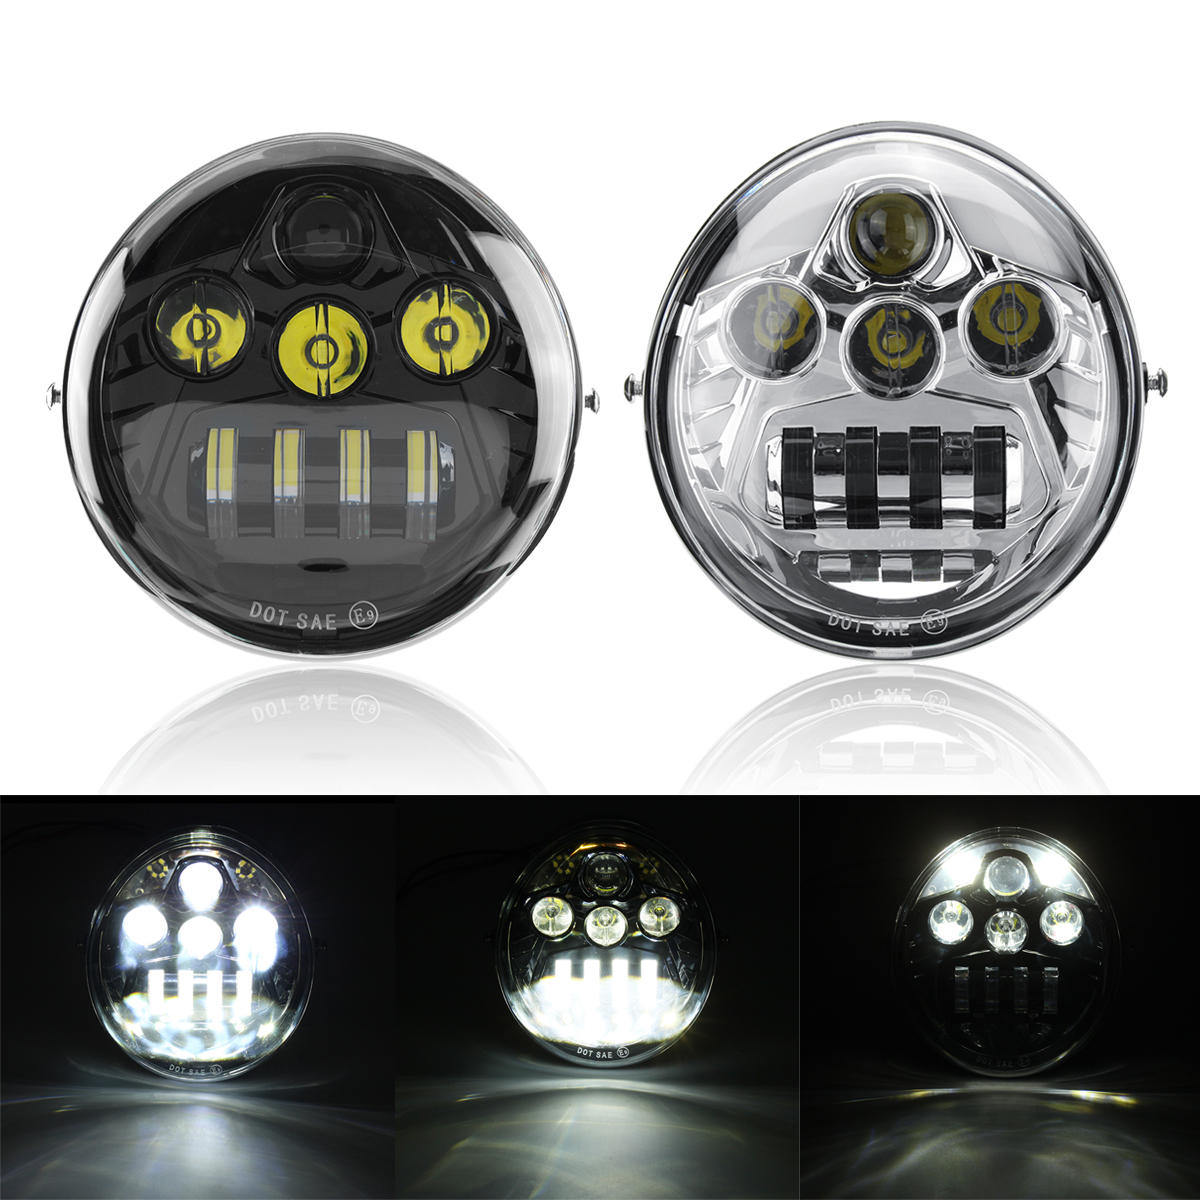 Wihtie + Amber W/ Side Light Pair 40W 4000LM 6500K Motorcycle LED Auxiliary Fog Spot Light Safety Driving Lamp Signal Light For BMW R1200GS ADV - 2